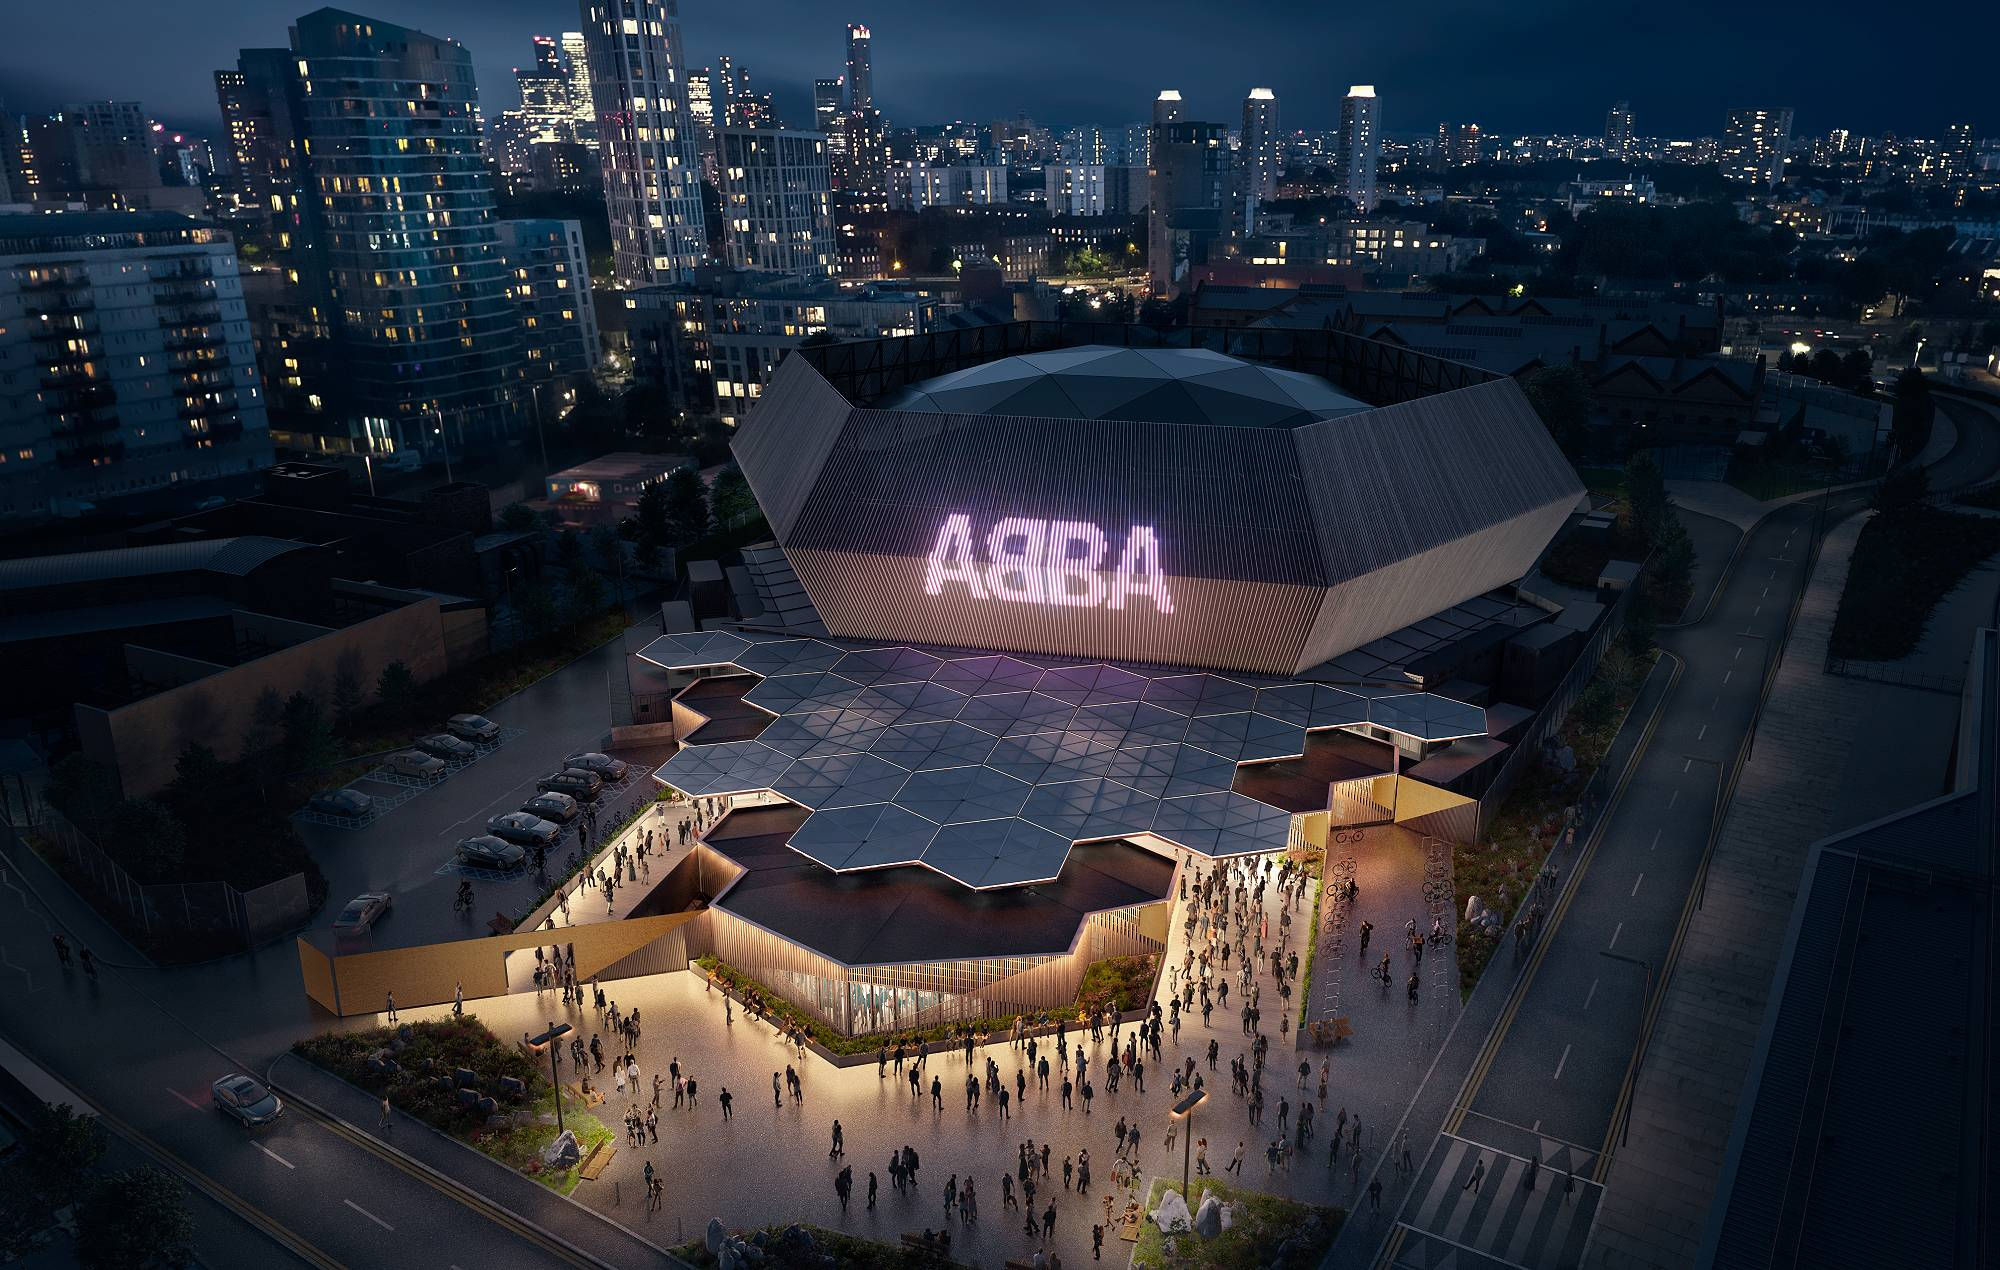 The ABBA Arena at London's Queen Elizabeth Olympic Park. Credit: Press